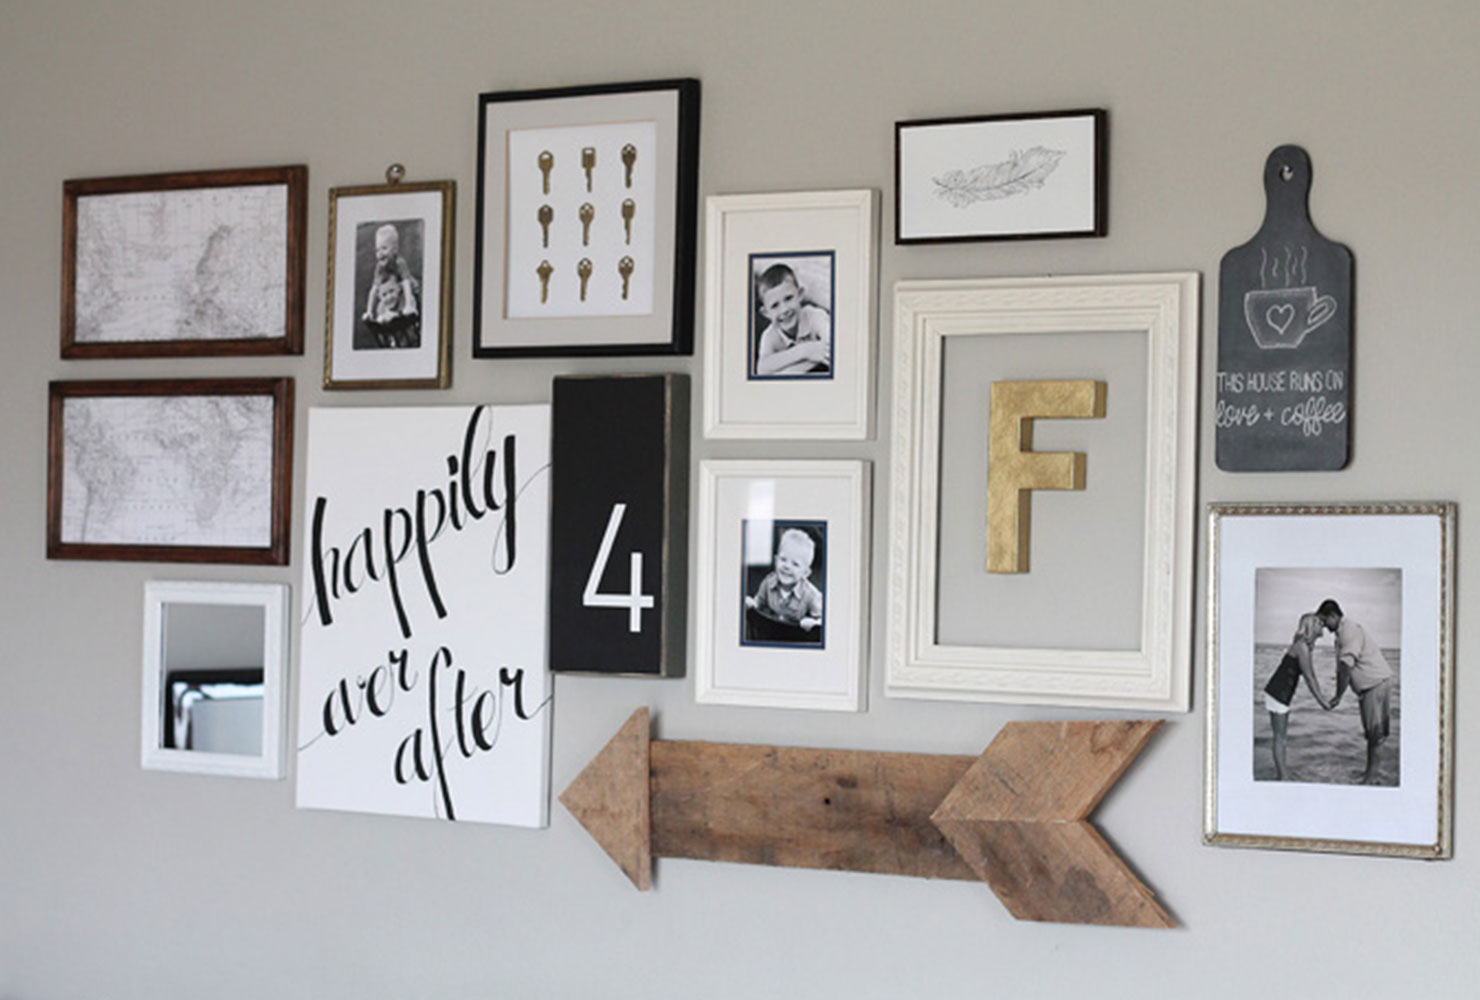 55 Diy Room Decor Ideas To Decorate Your Home